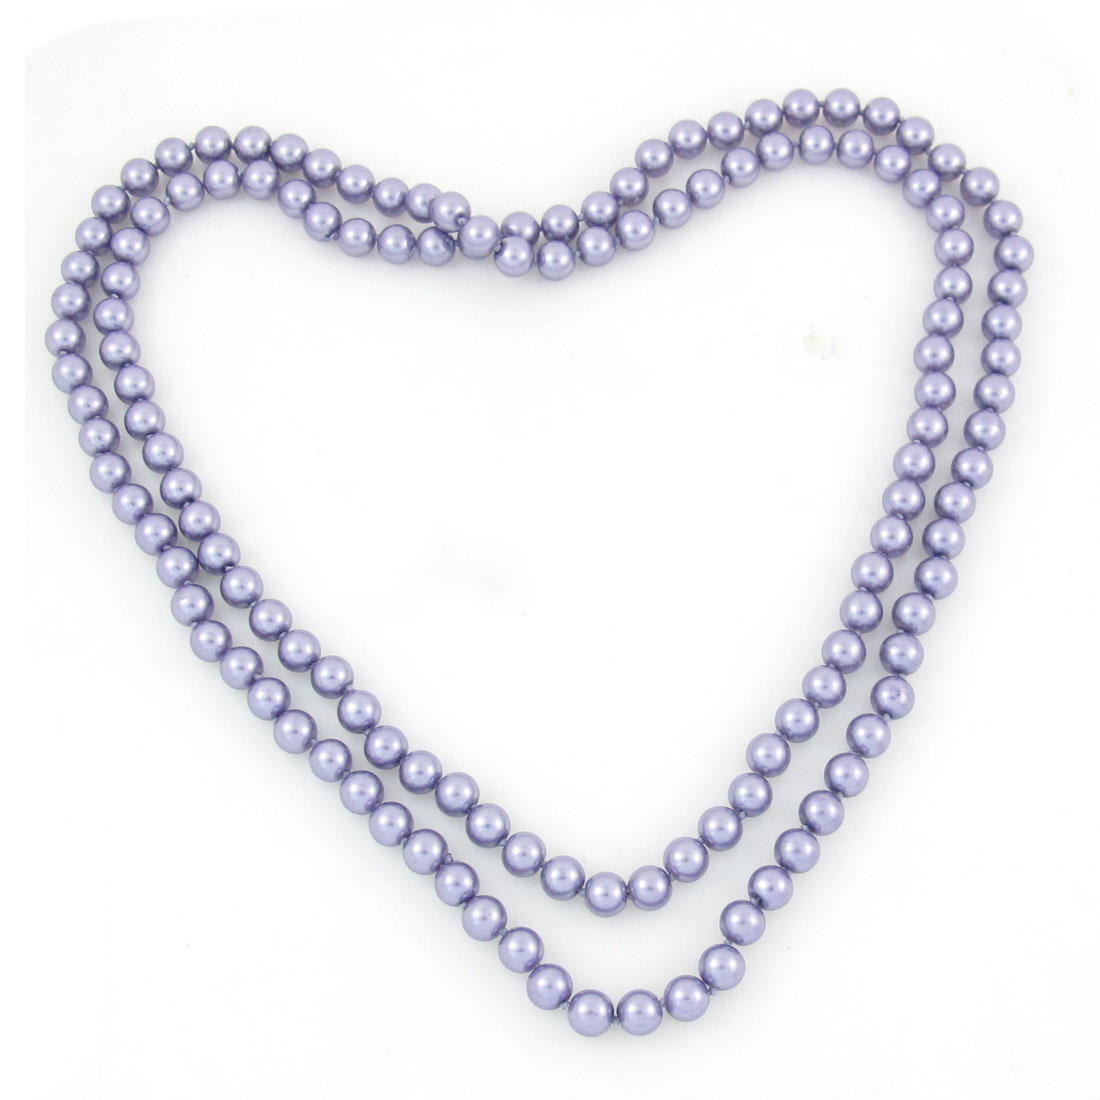 Woman Purple Imitation Pearls Round Beads Match Sweater Necklace 4.9ft Long